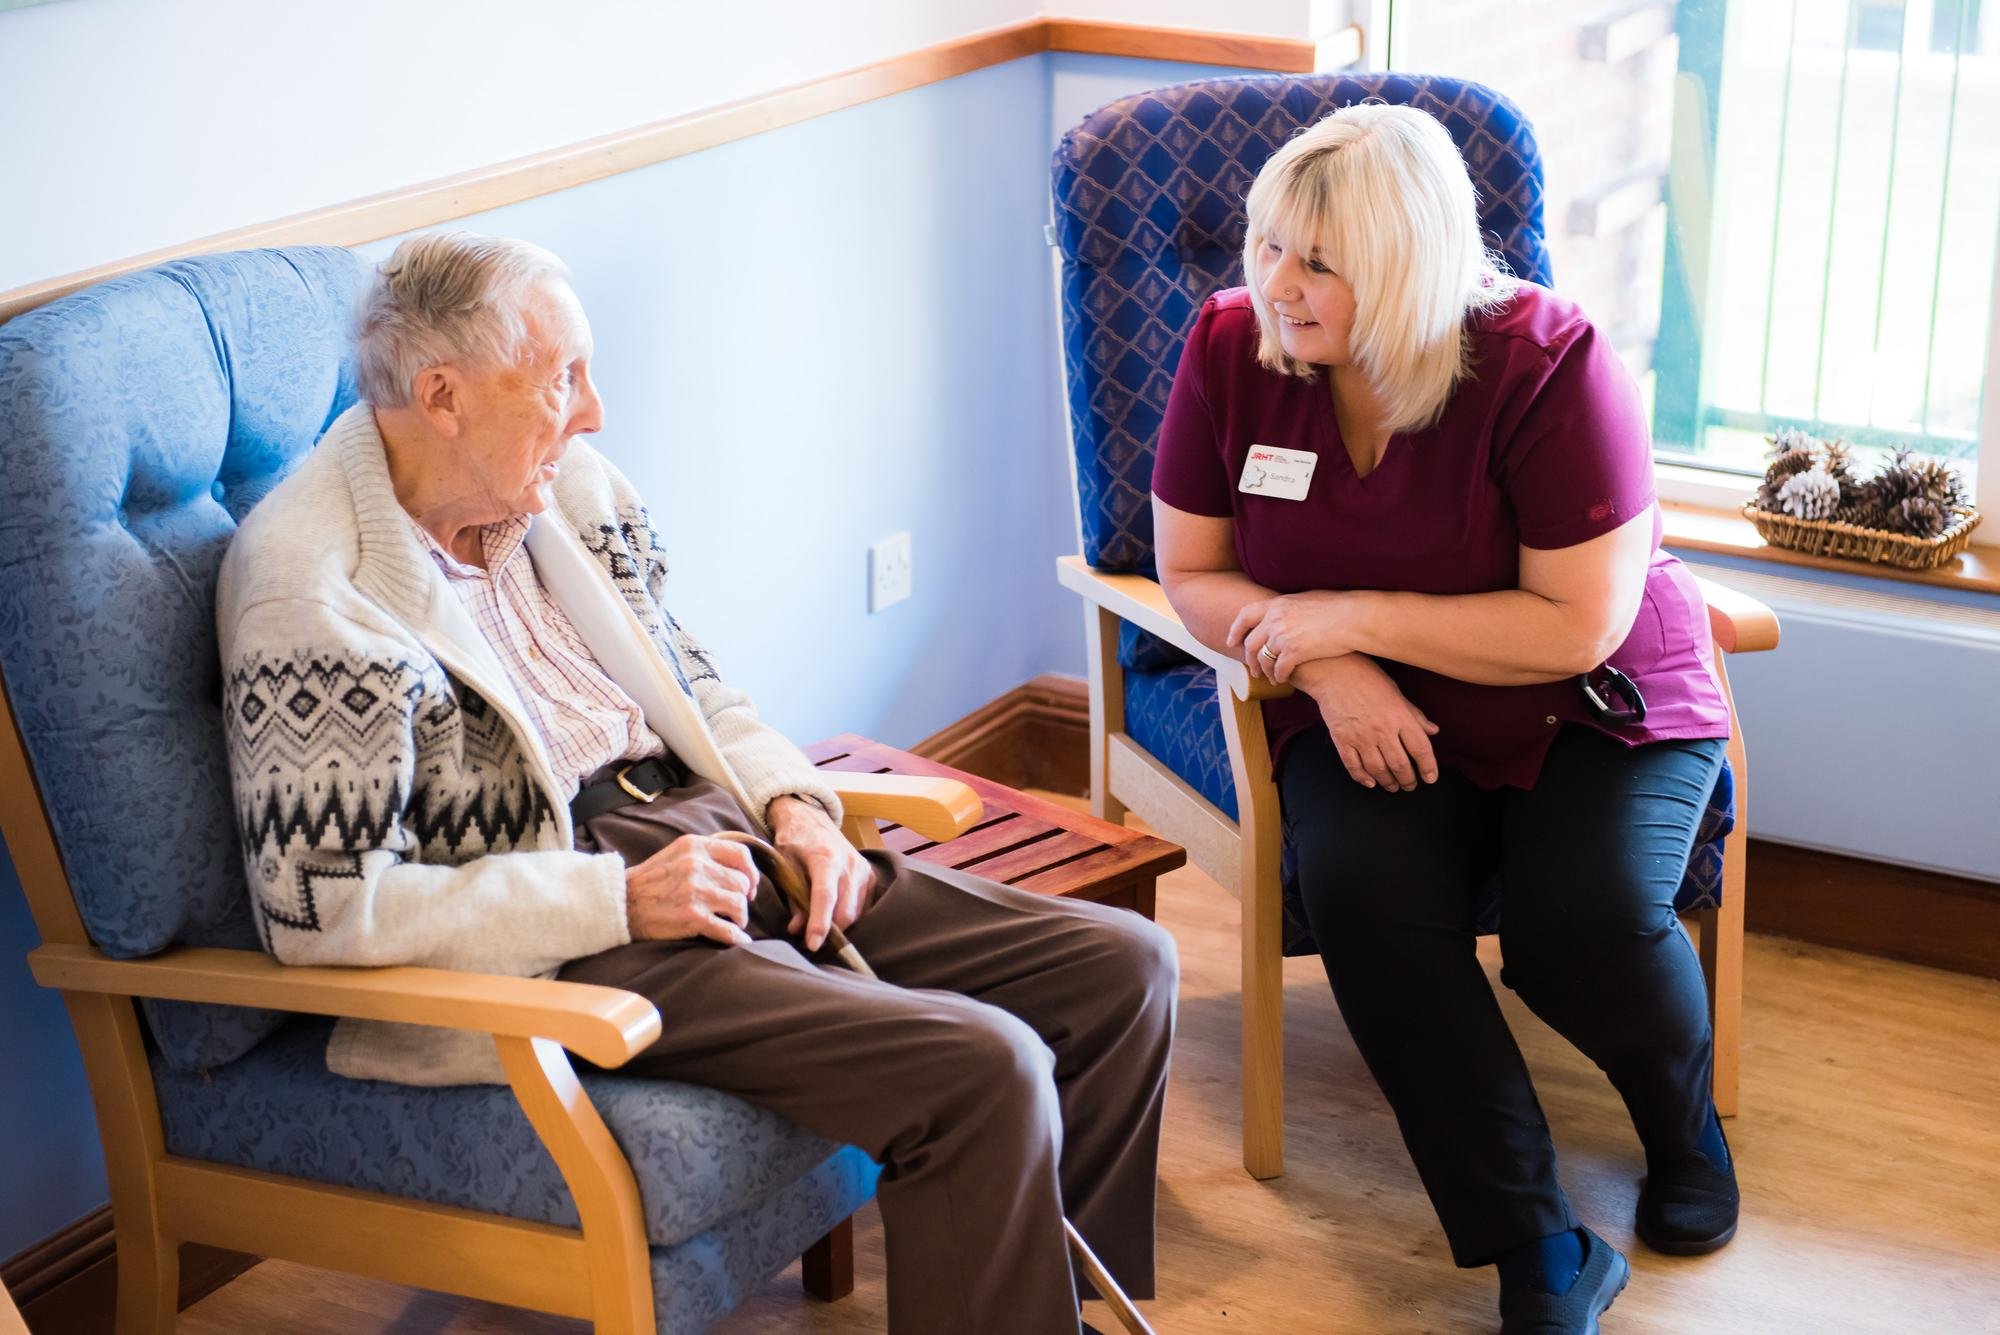 One of North's longstanding housing associations and care providers is urgently looking to hire new staff